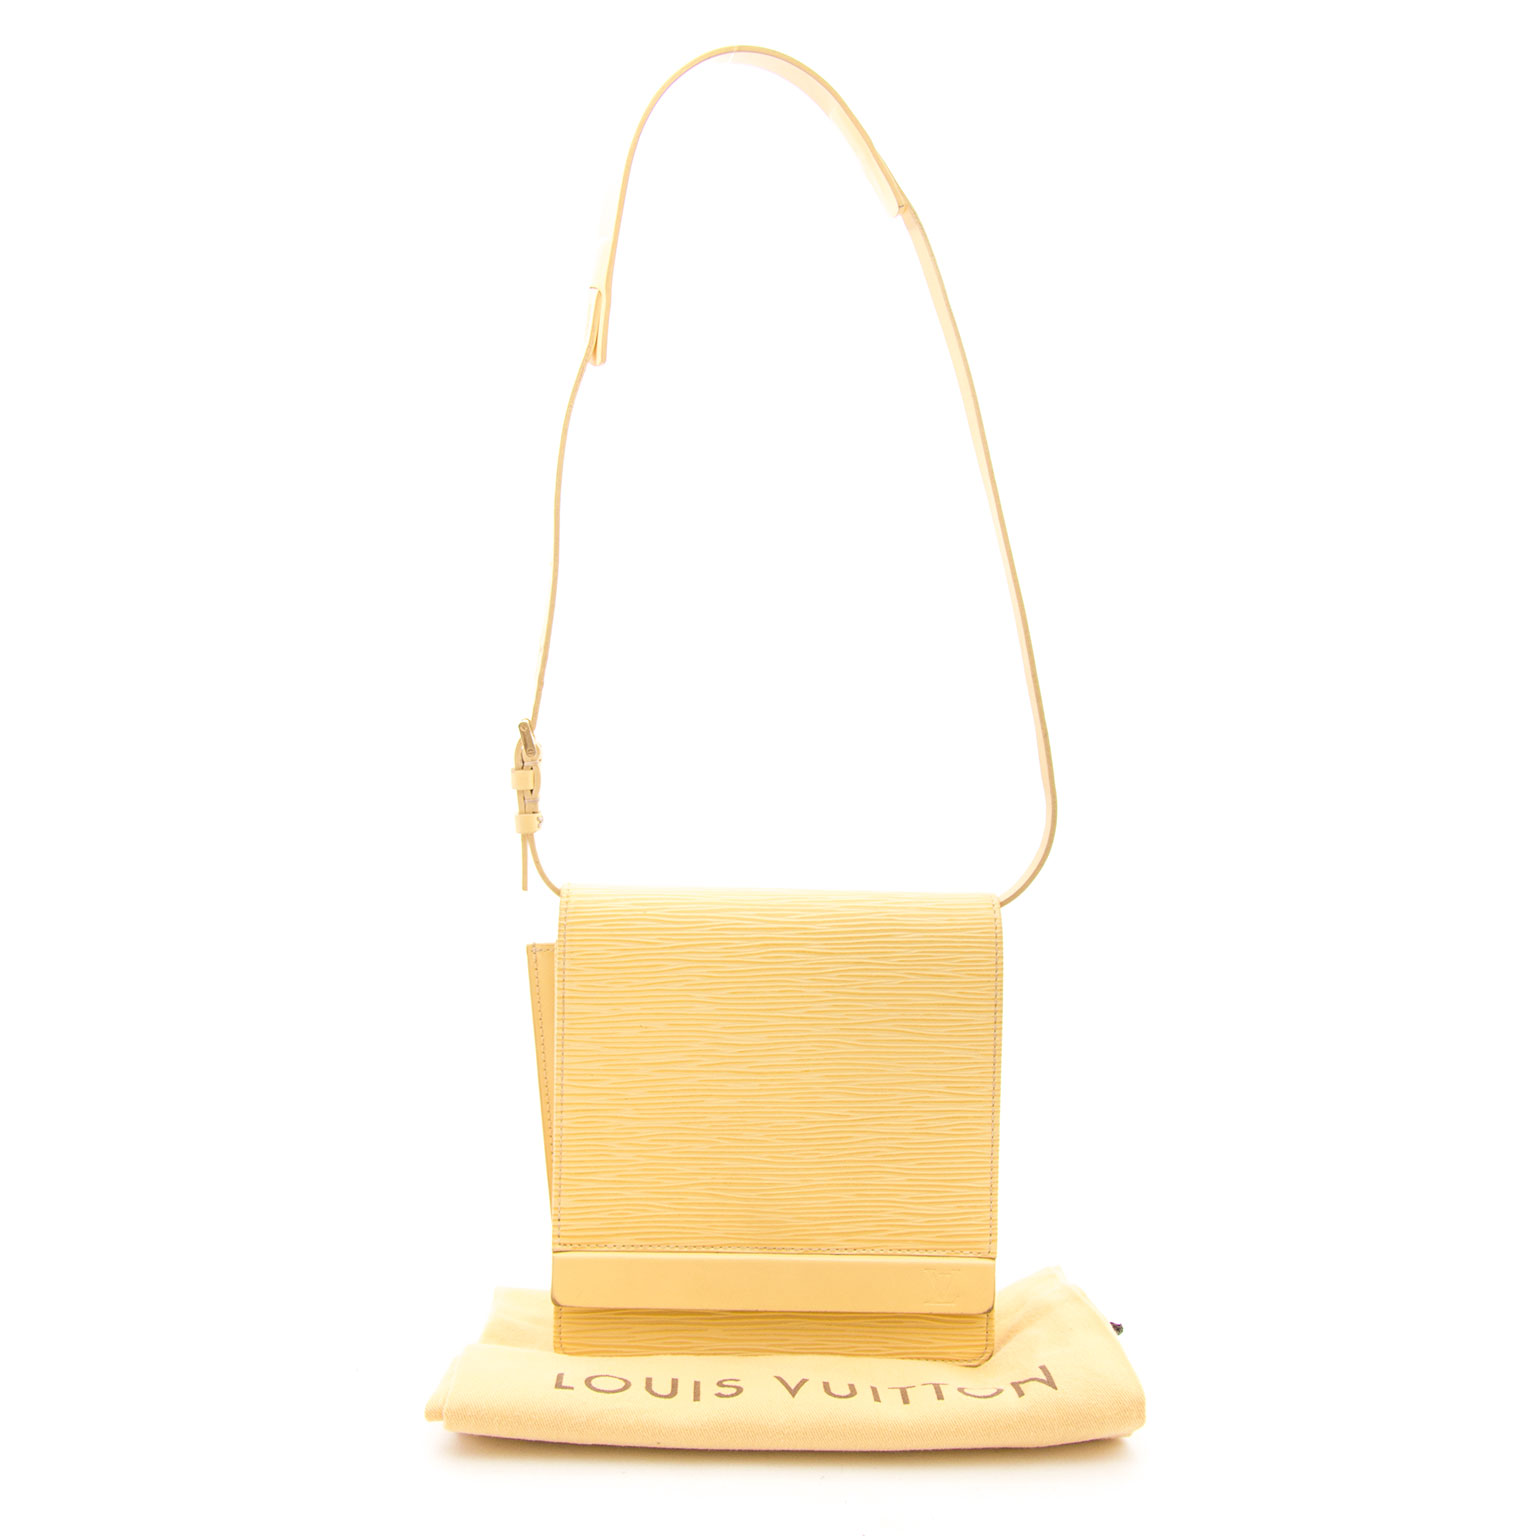 buy safe and secure louis vuitton biarritz bag for the best price at labellov.com